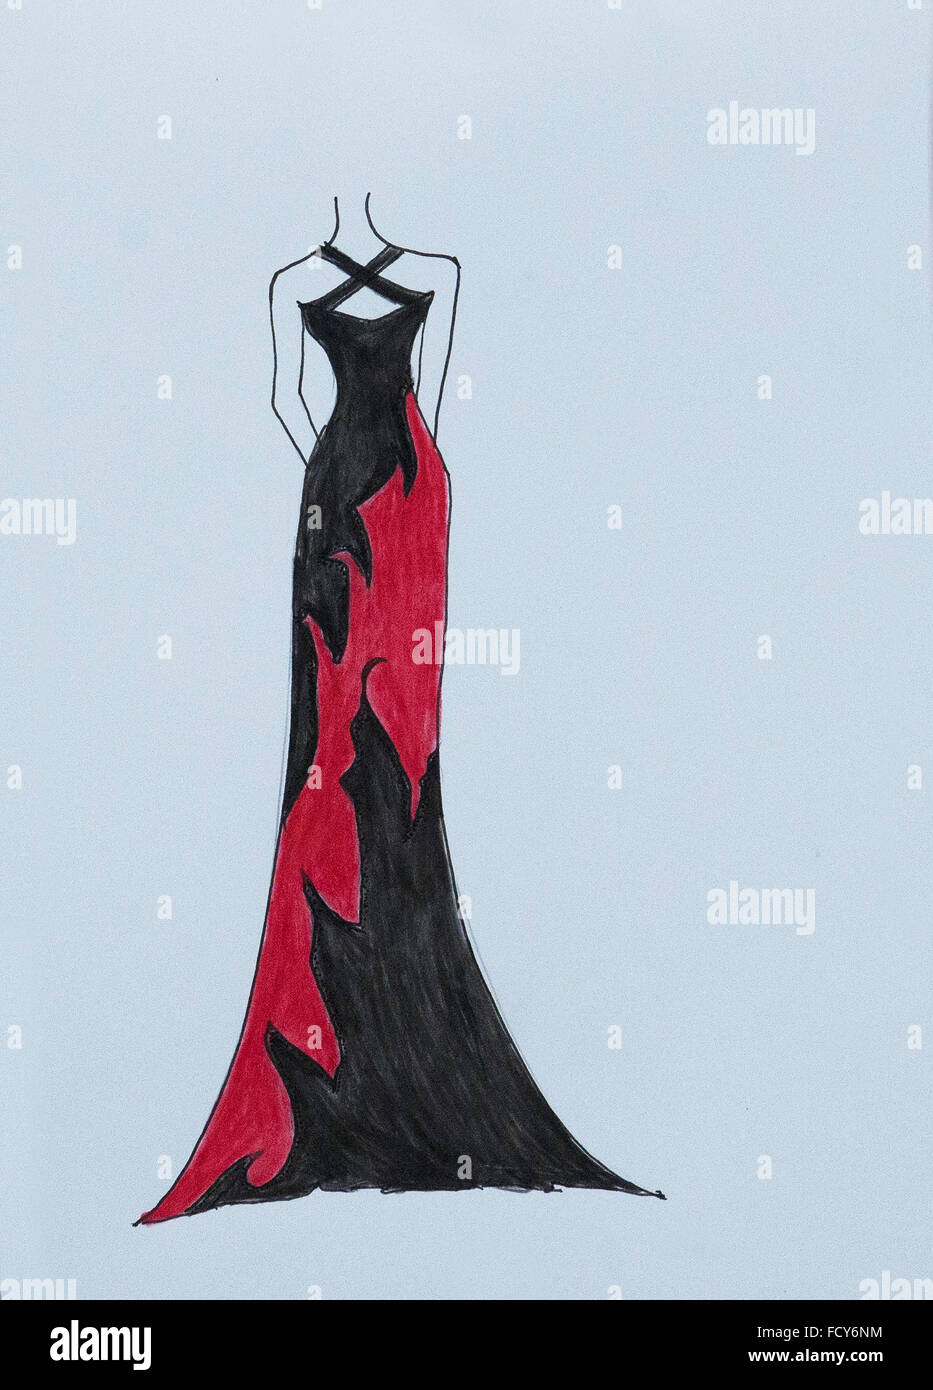 Handmade fashion sketch fashion draw of elegant woman long dress gown evening dress in black color with red abstract pattern